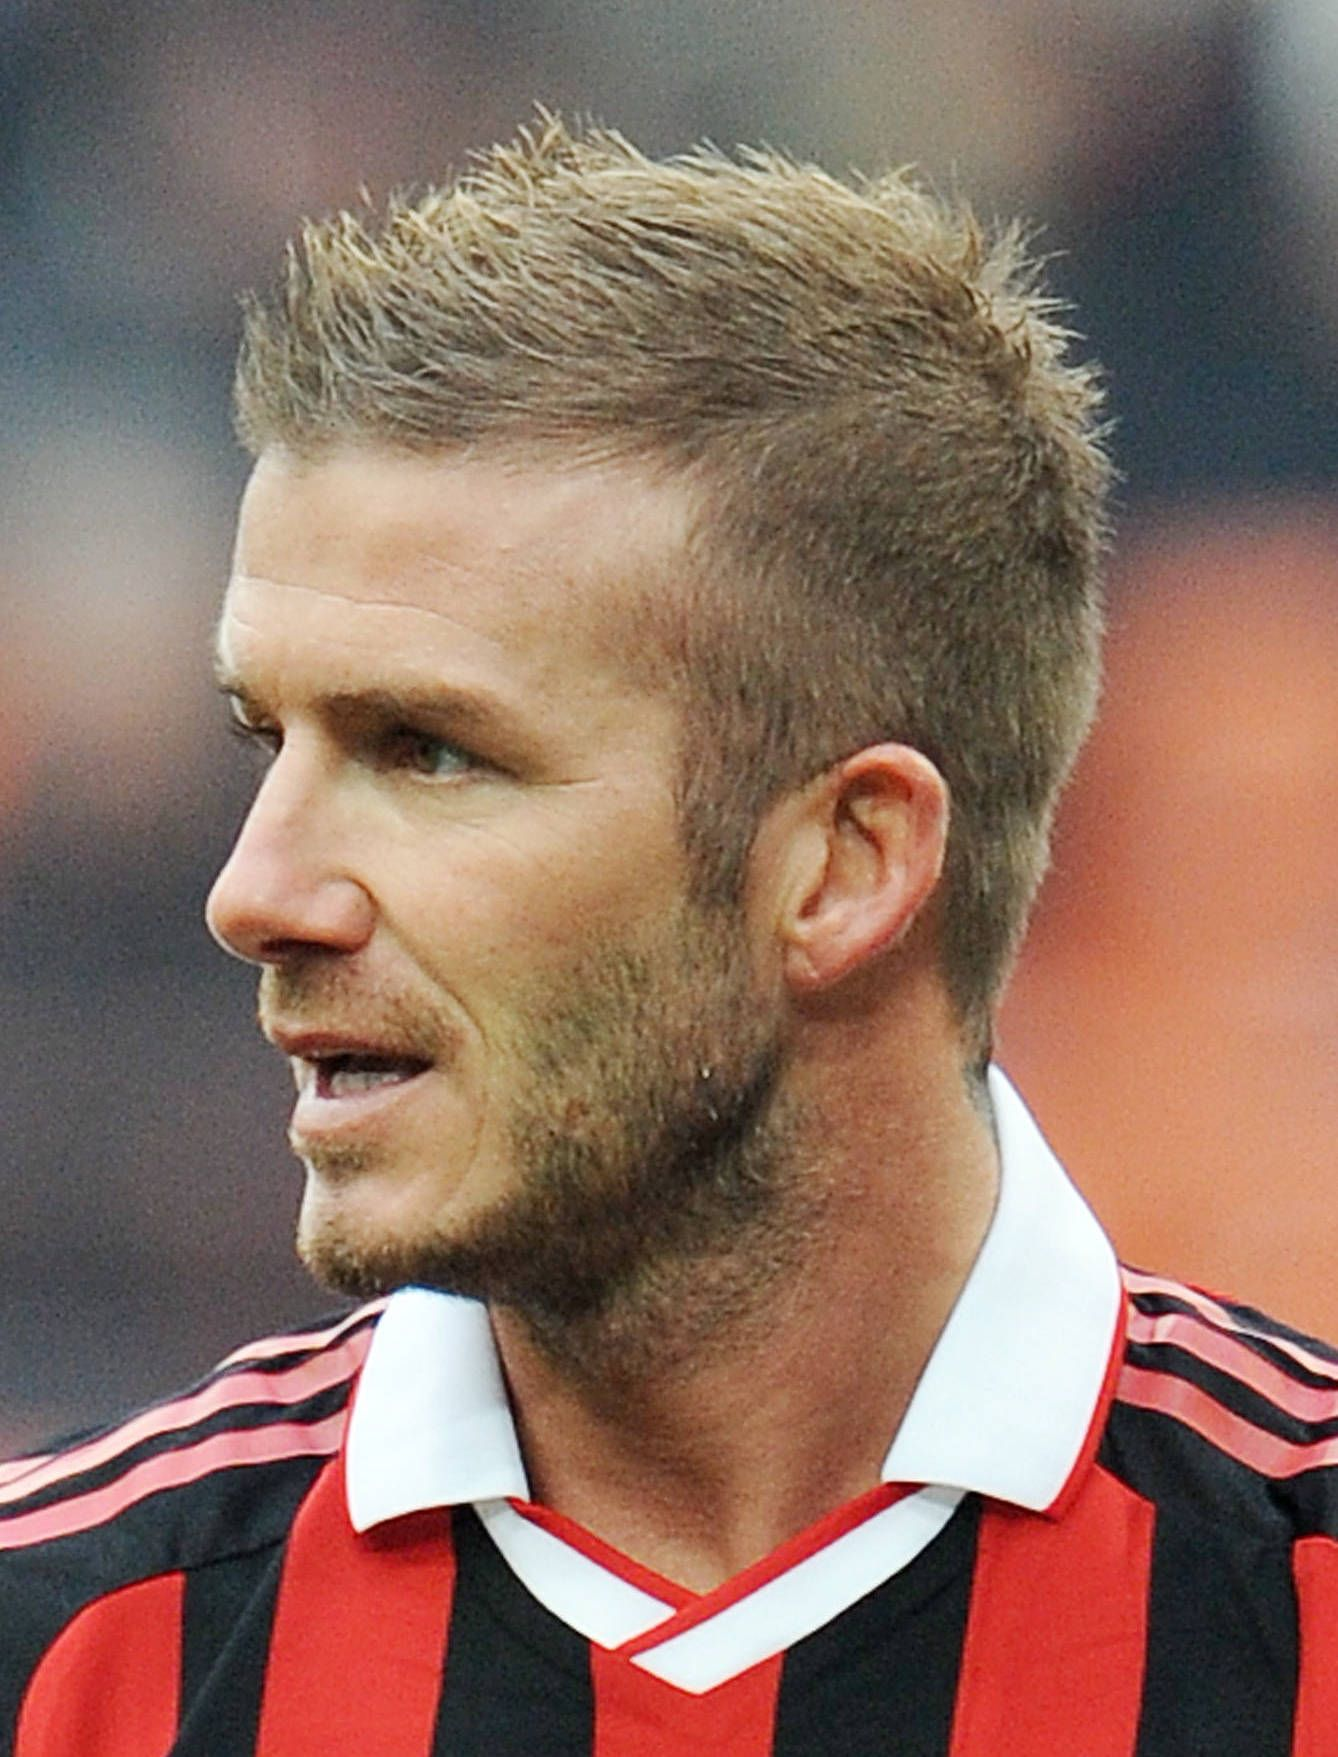 gallery of short hairstyles for men | google images, faux hawk and